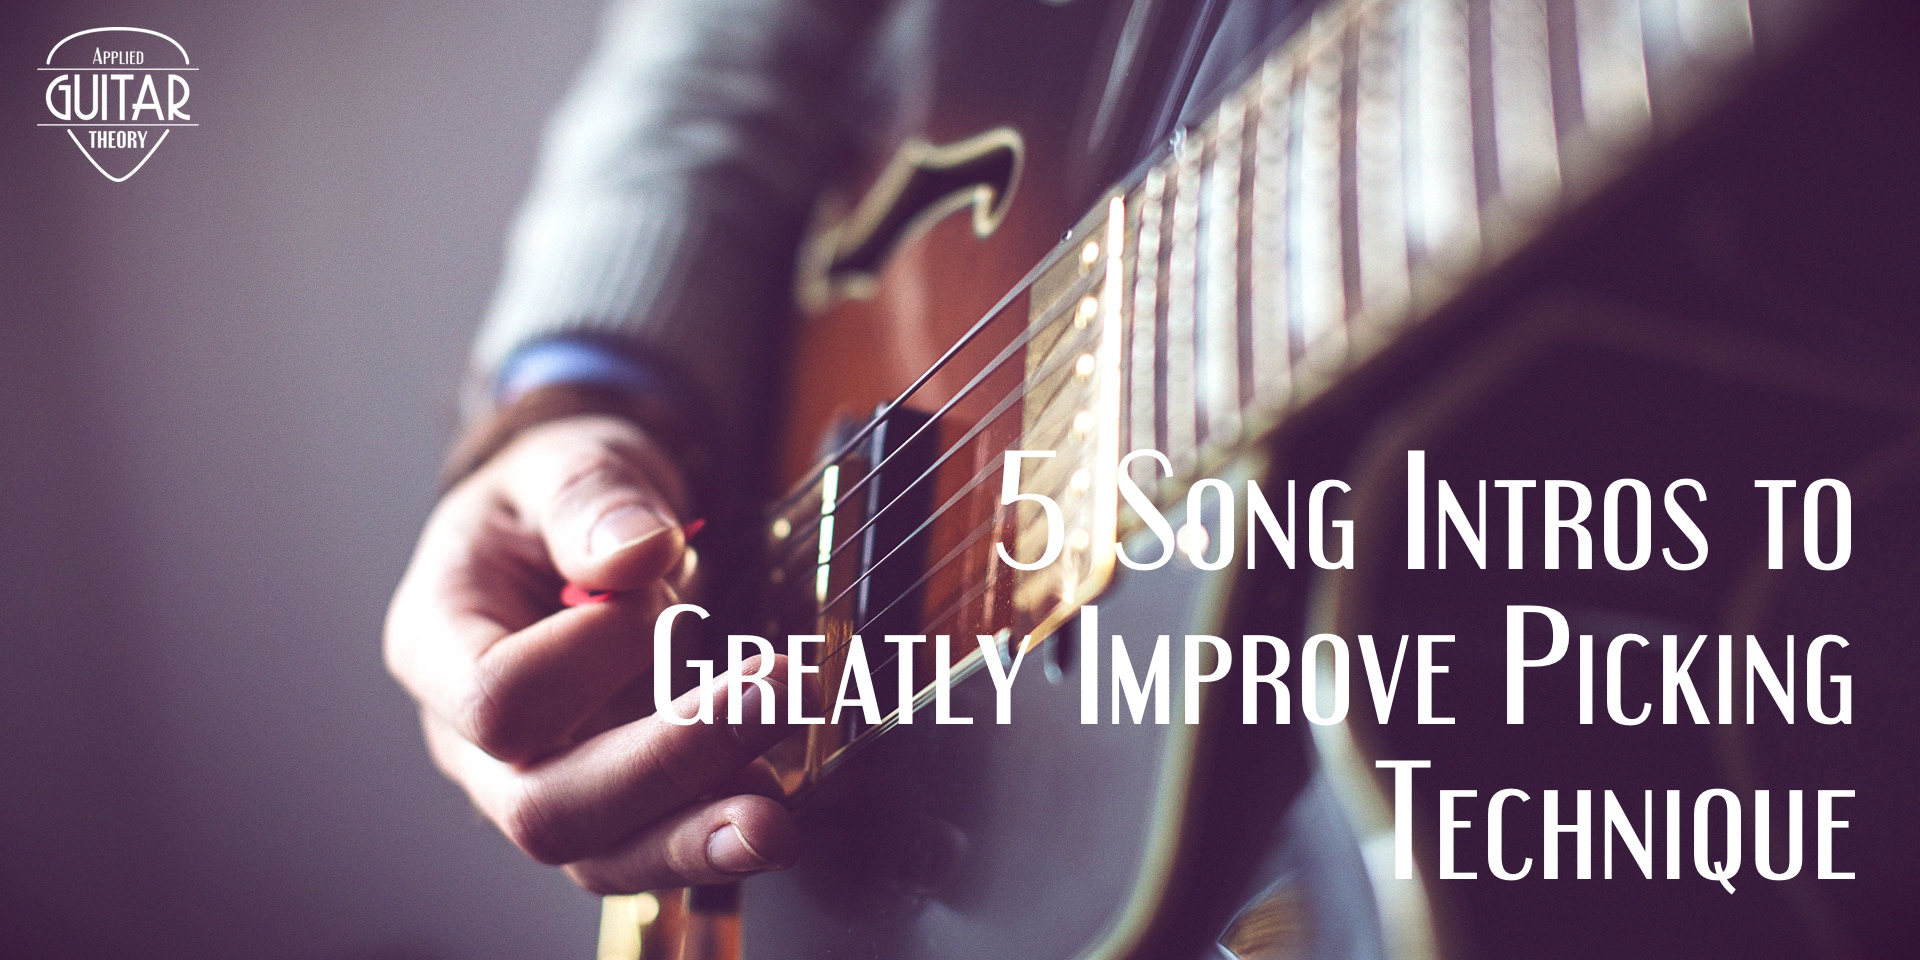 Improve picking technique featured image